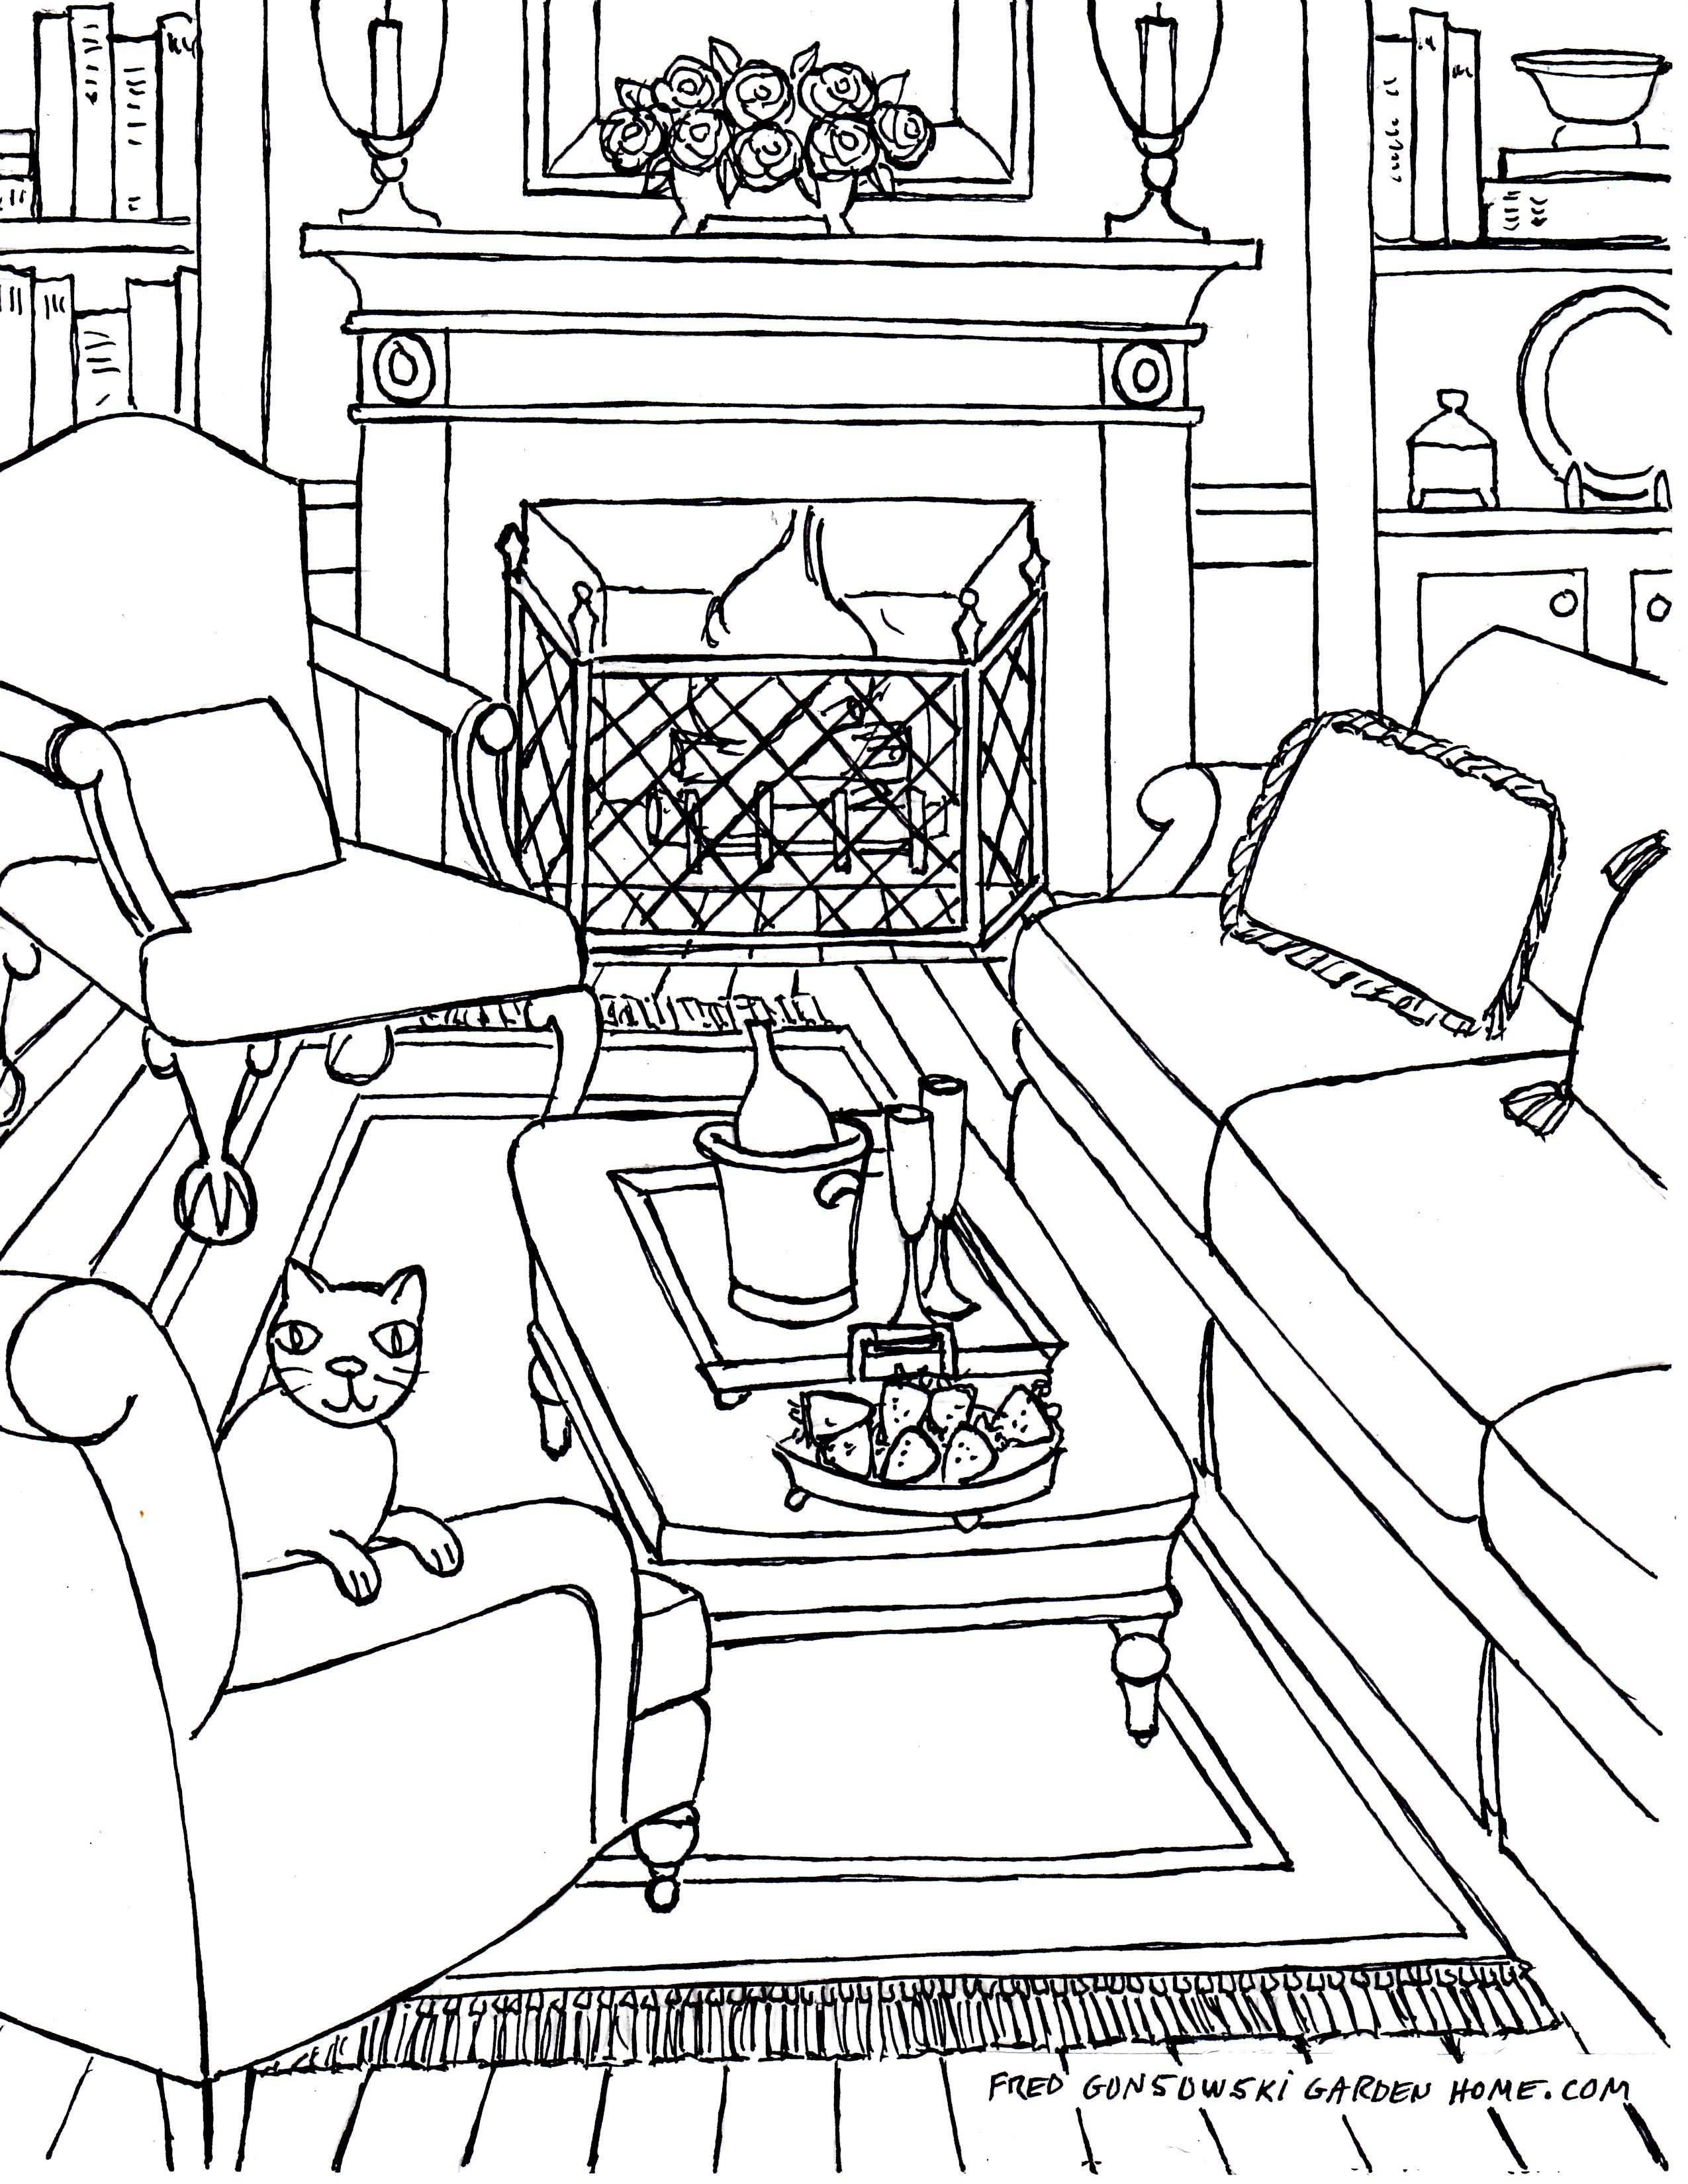 Coloring Pages Adults Some Drawings Living Rooms - Cute ...